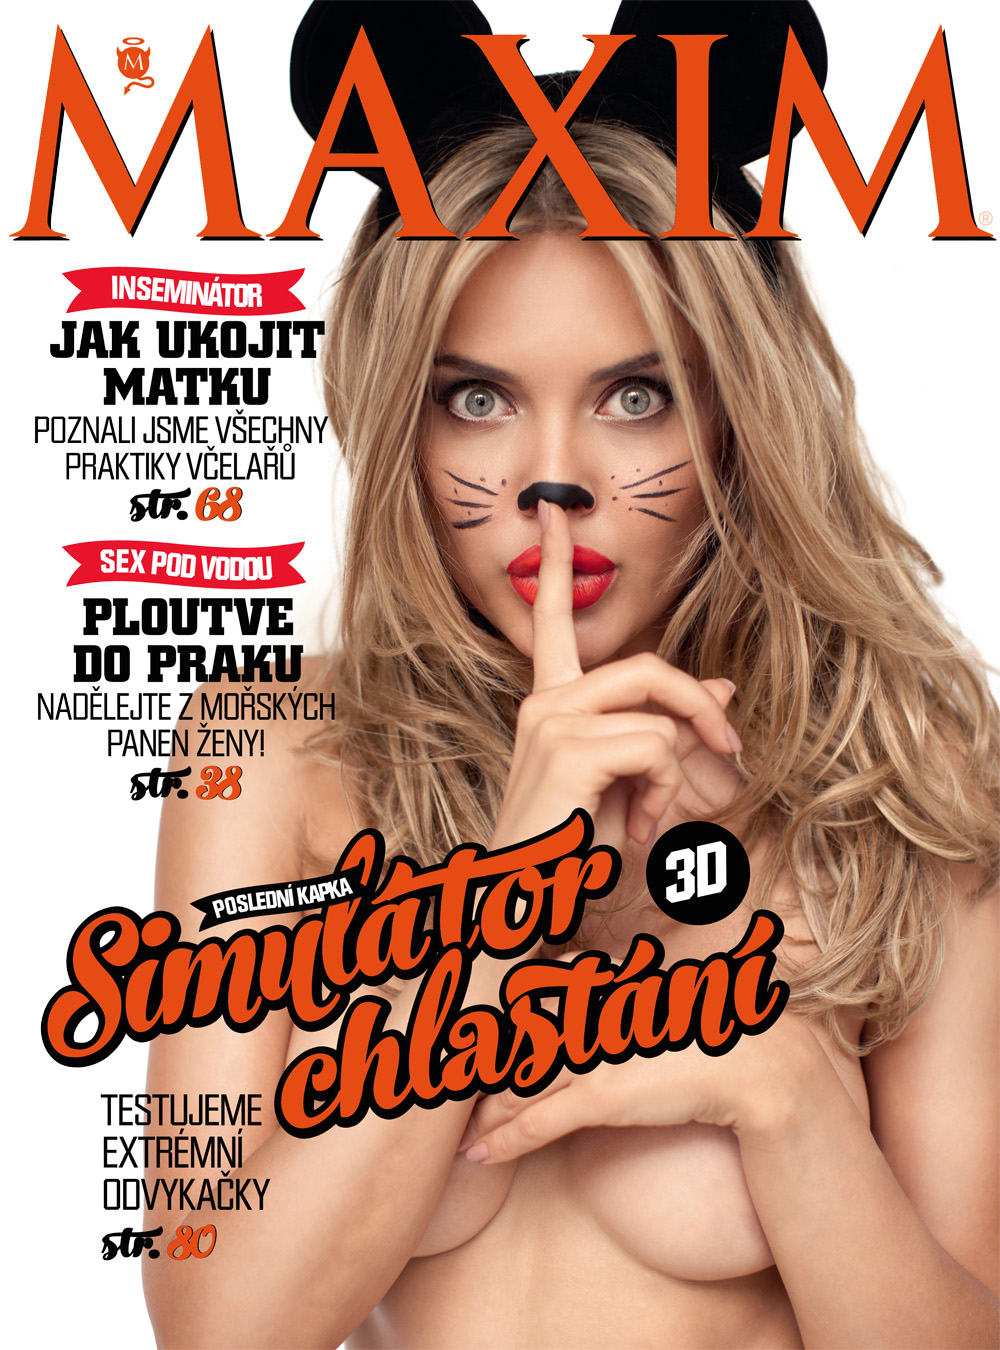 Maxim Cover shoot I did with Tatiana Veryovkina